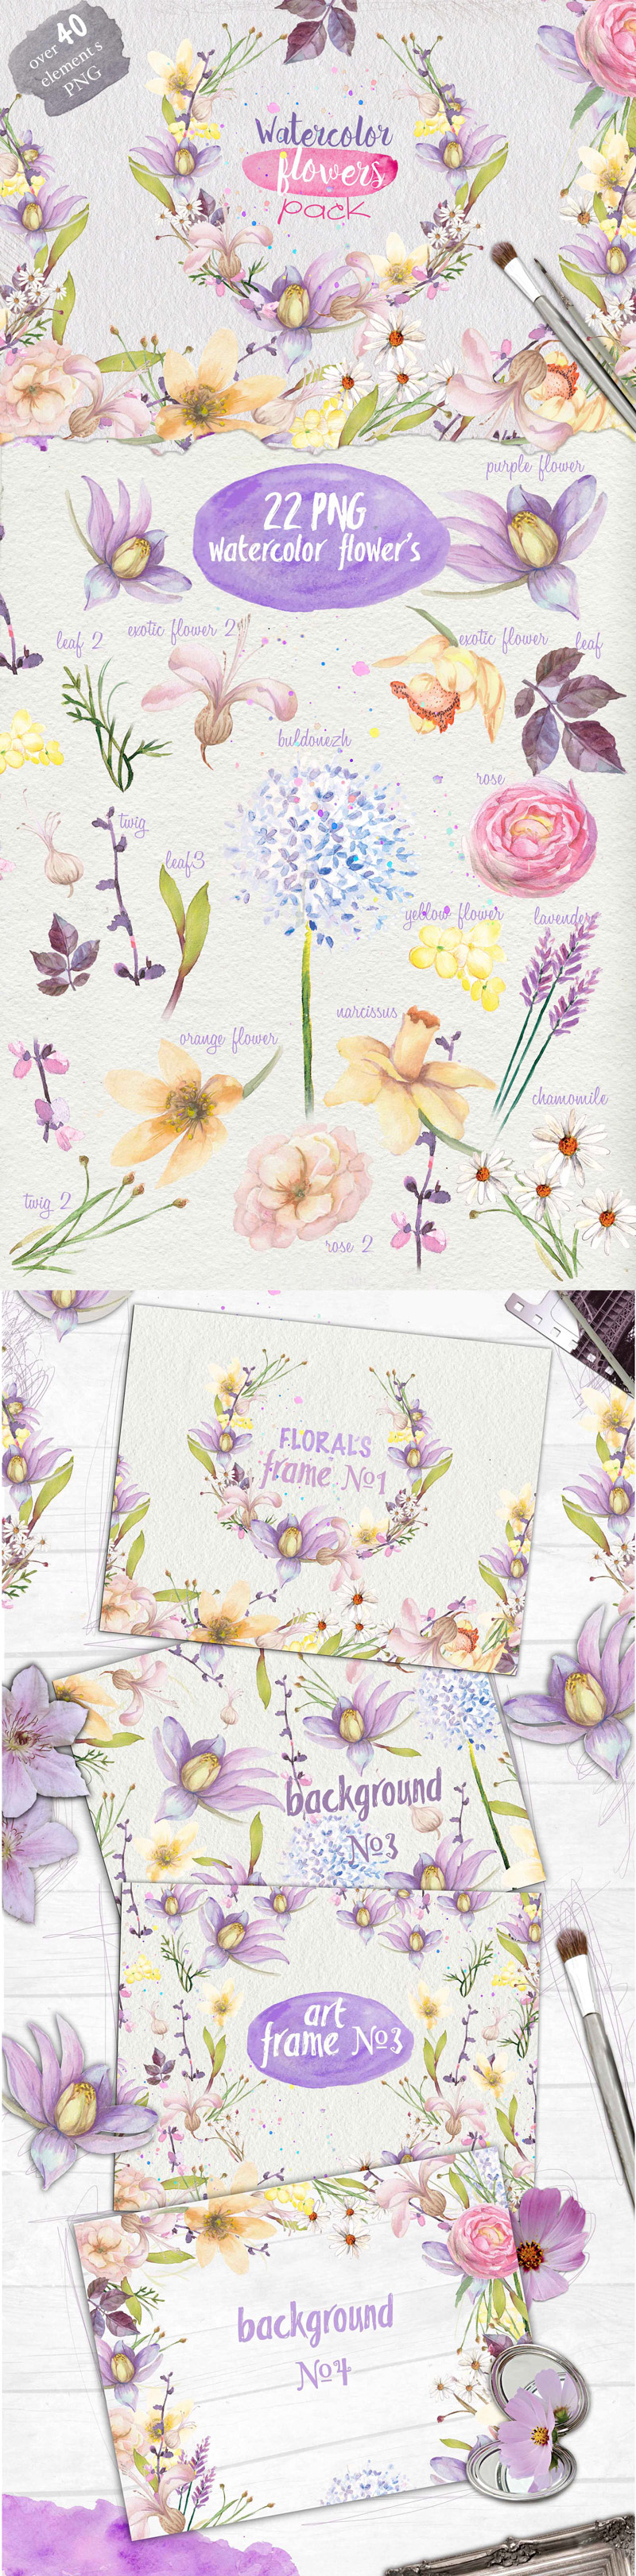 Watercolor-flowers-Pack